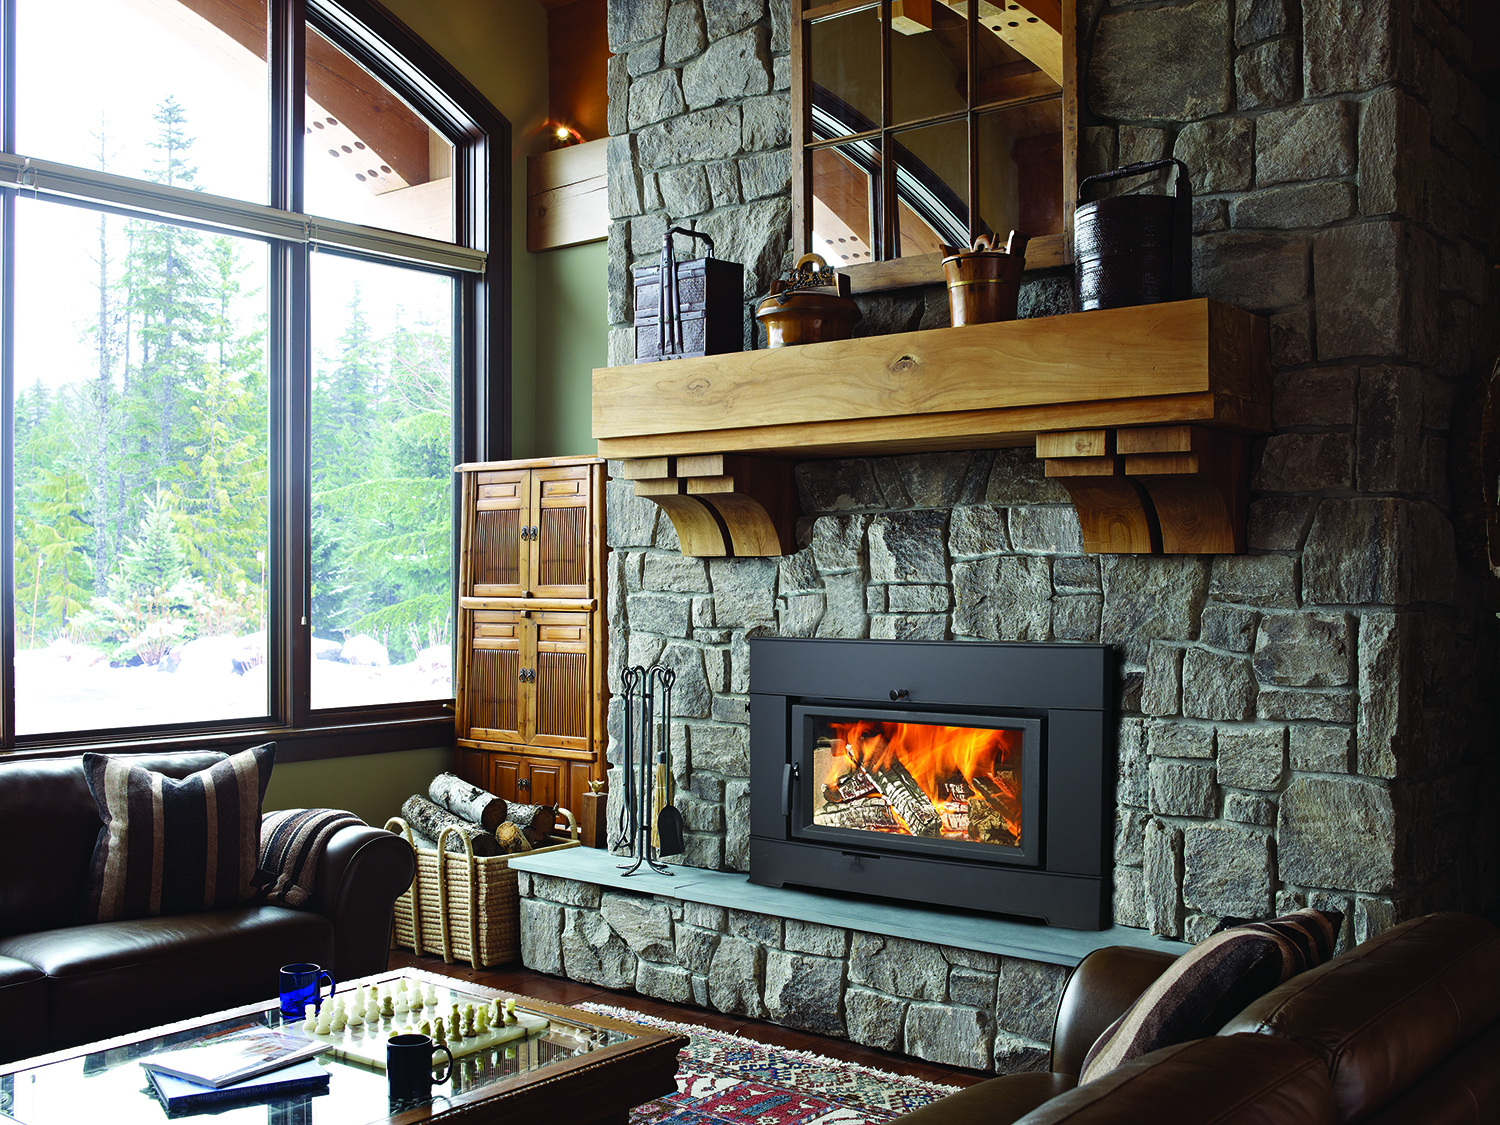 Fireplace in rustic room